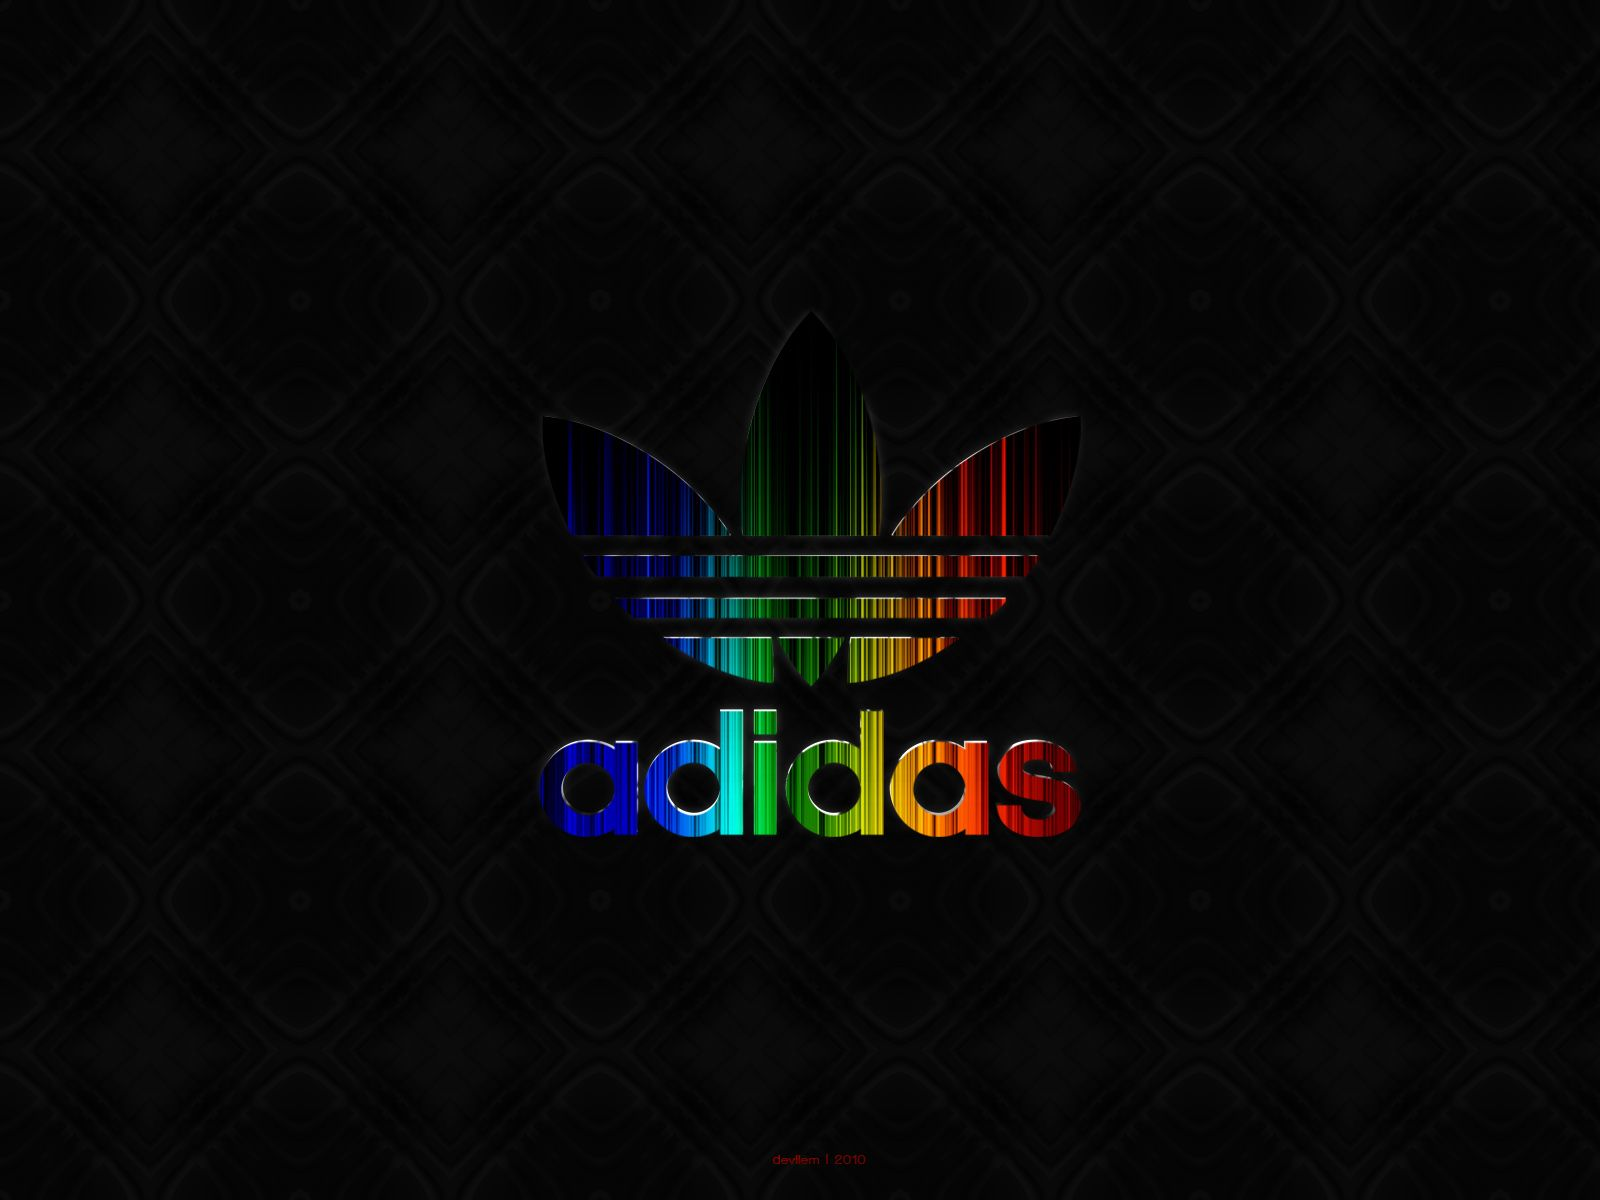 Cool Wallpaper Adidas Iphone 6s Plus - a4eaf40d0be588905d1bf15939257a32  2018_638037      .jpg